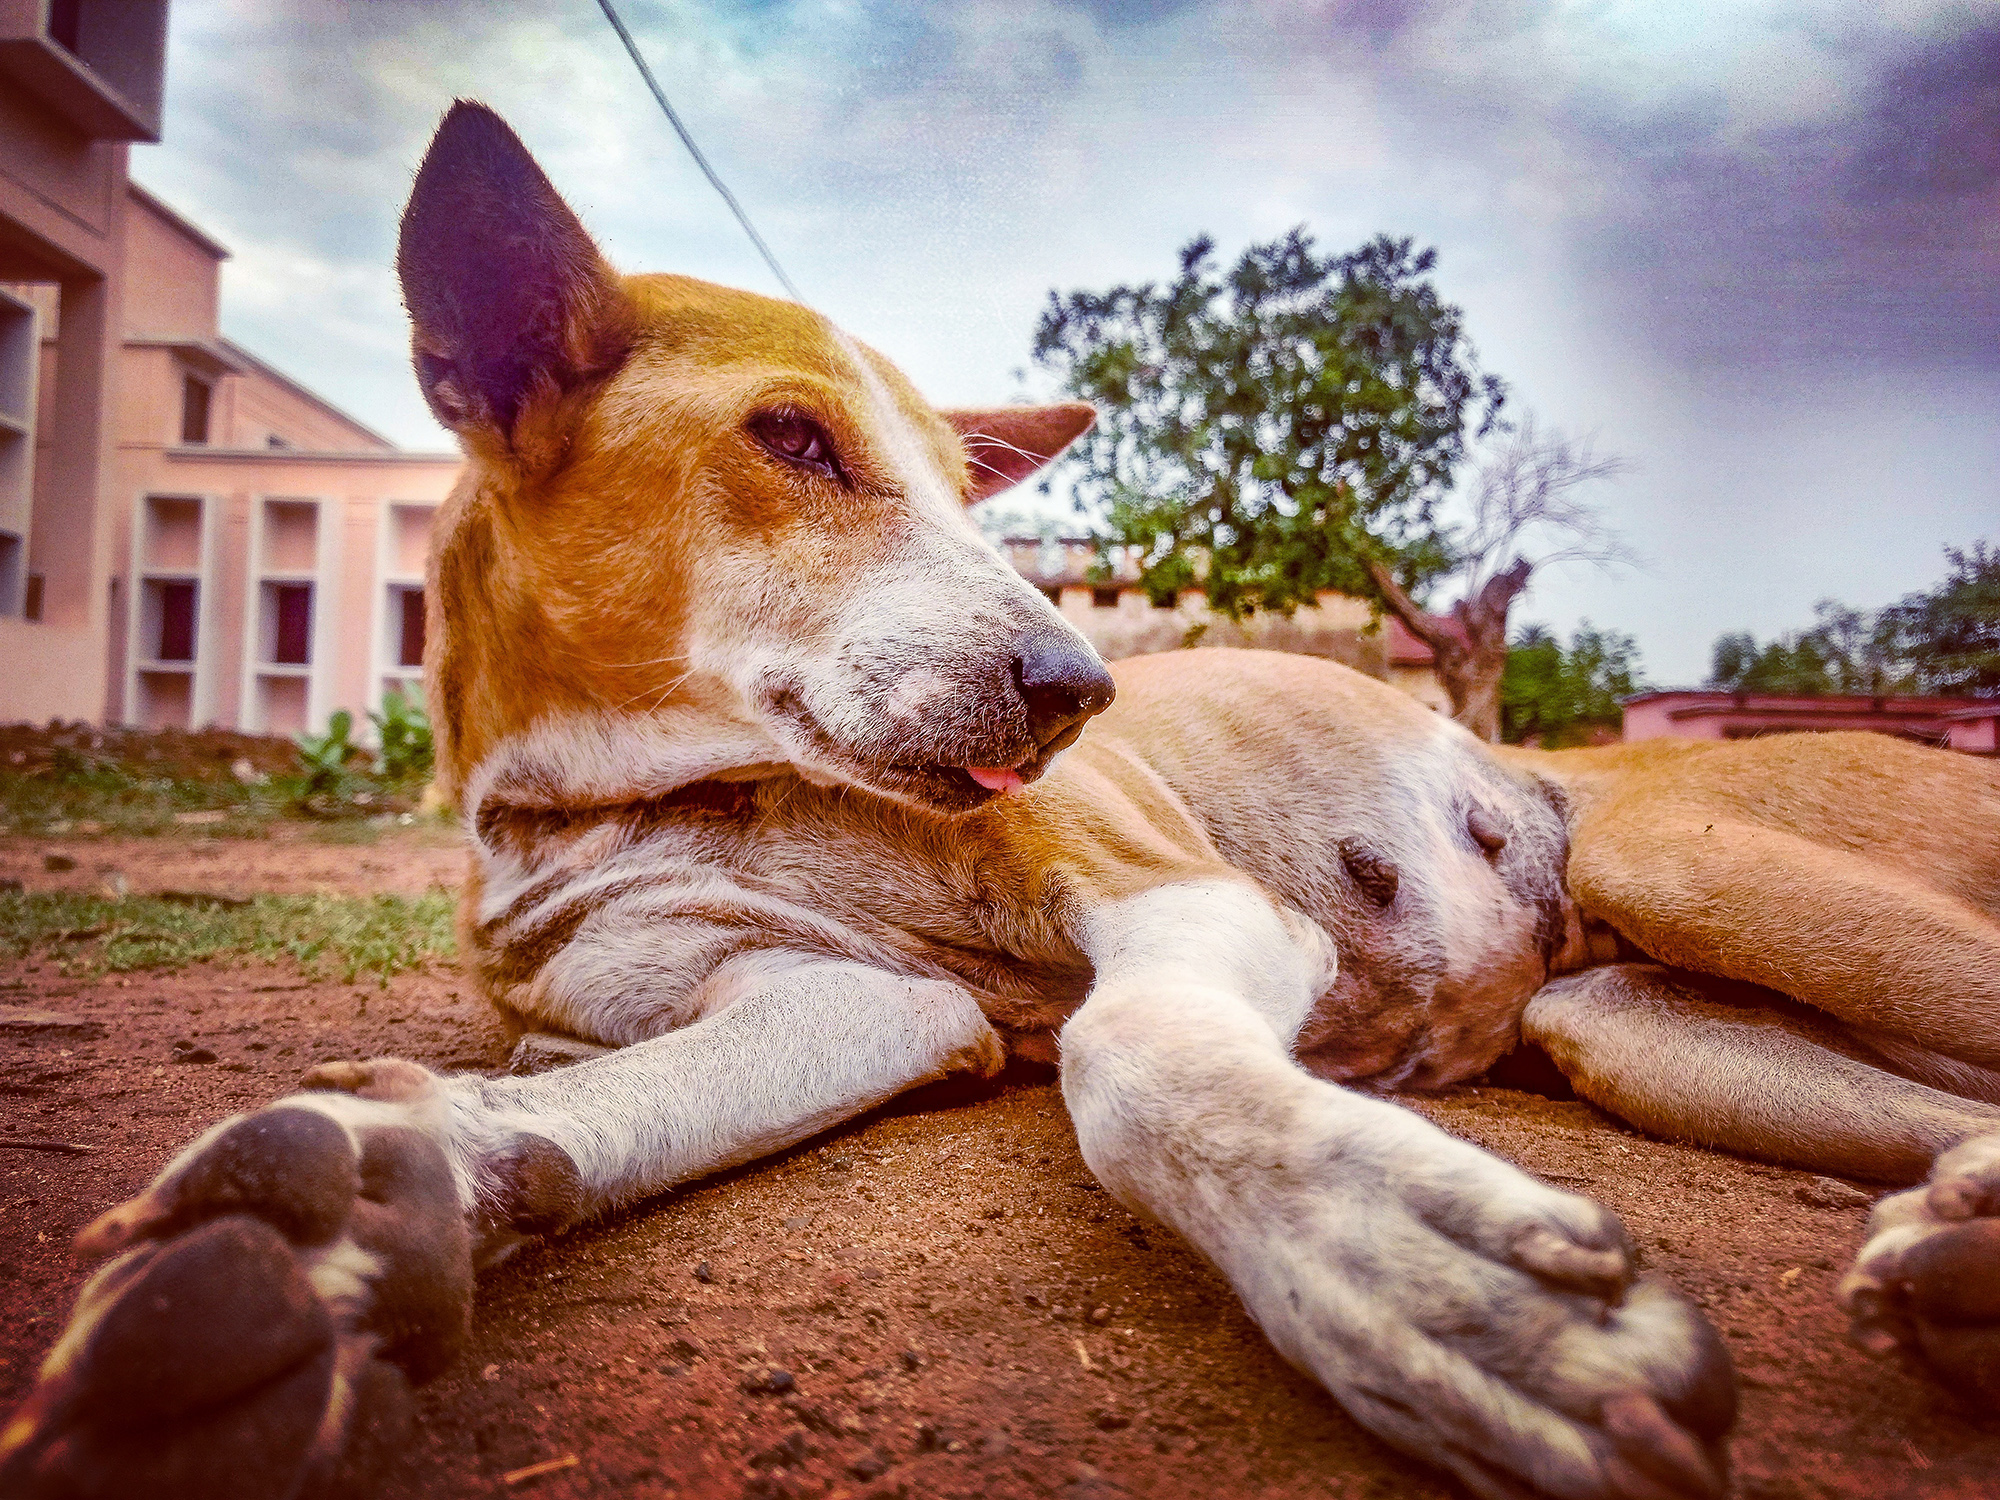 she is really lazy .she spends most of the time by sleeping .just found her sleeping in front of my home and clicked this .:)